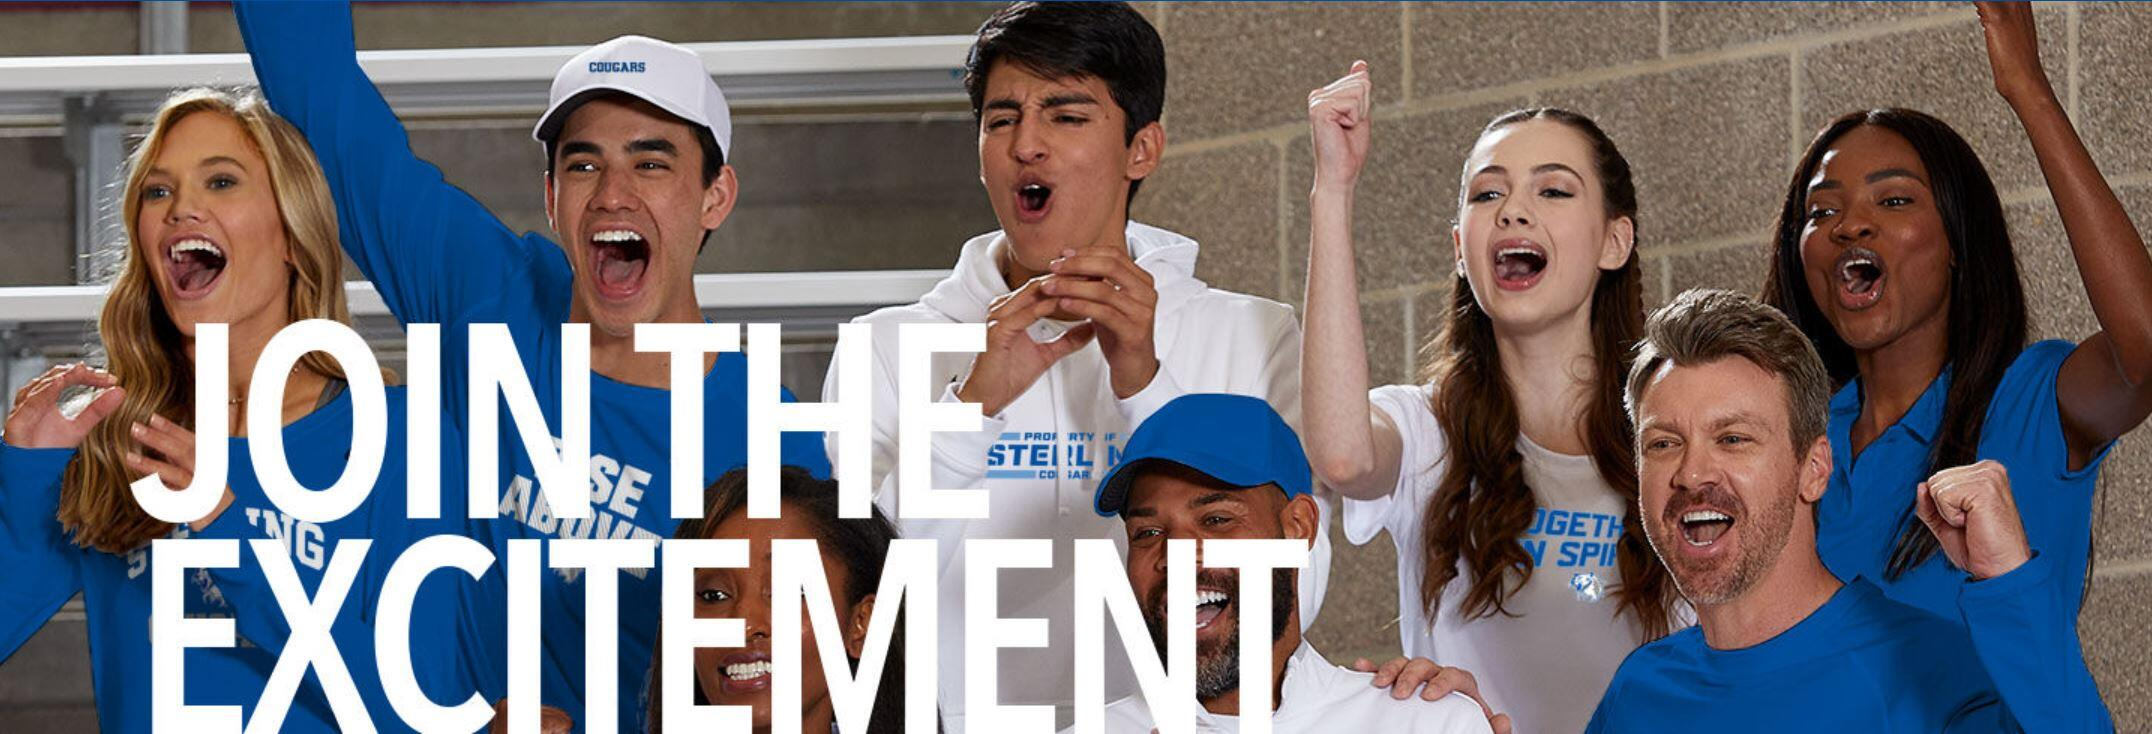 Join the Excitement - Buy Gear at the School Store